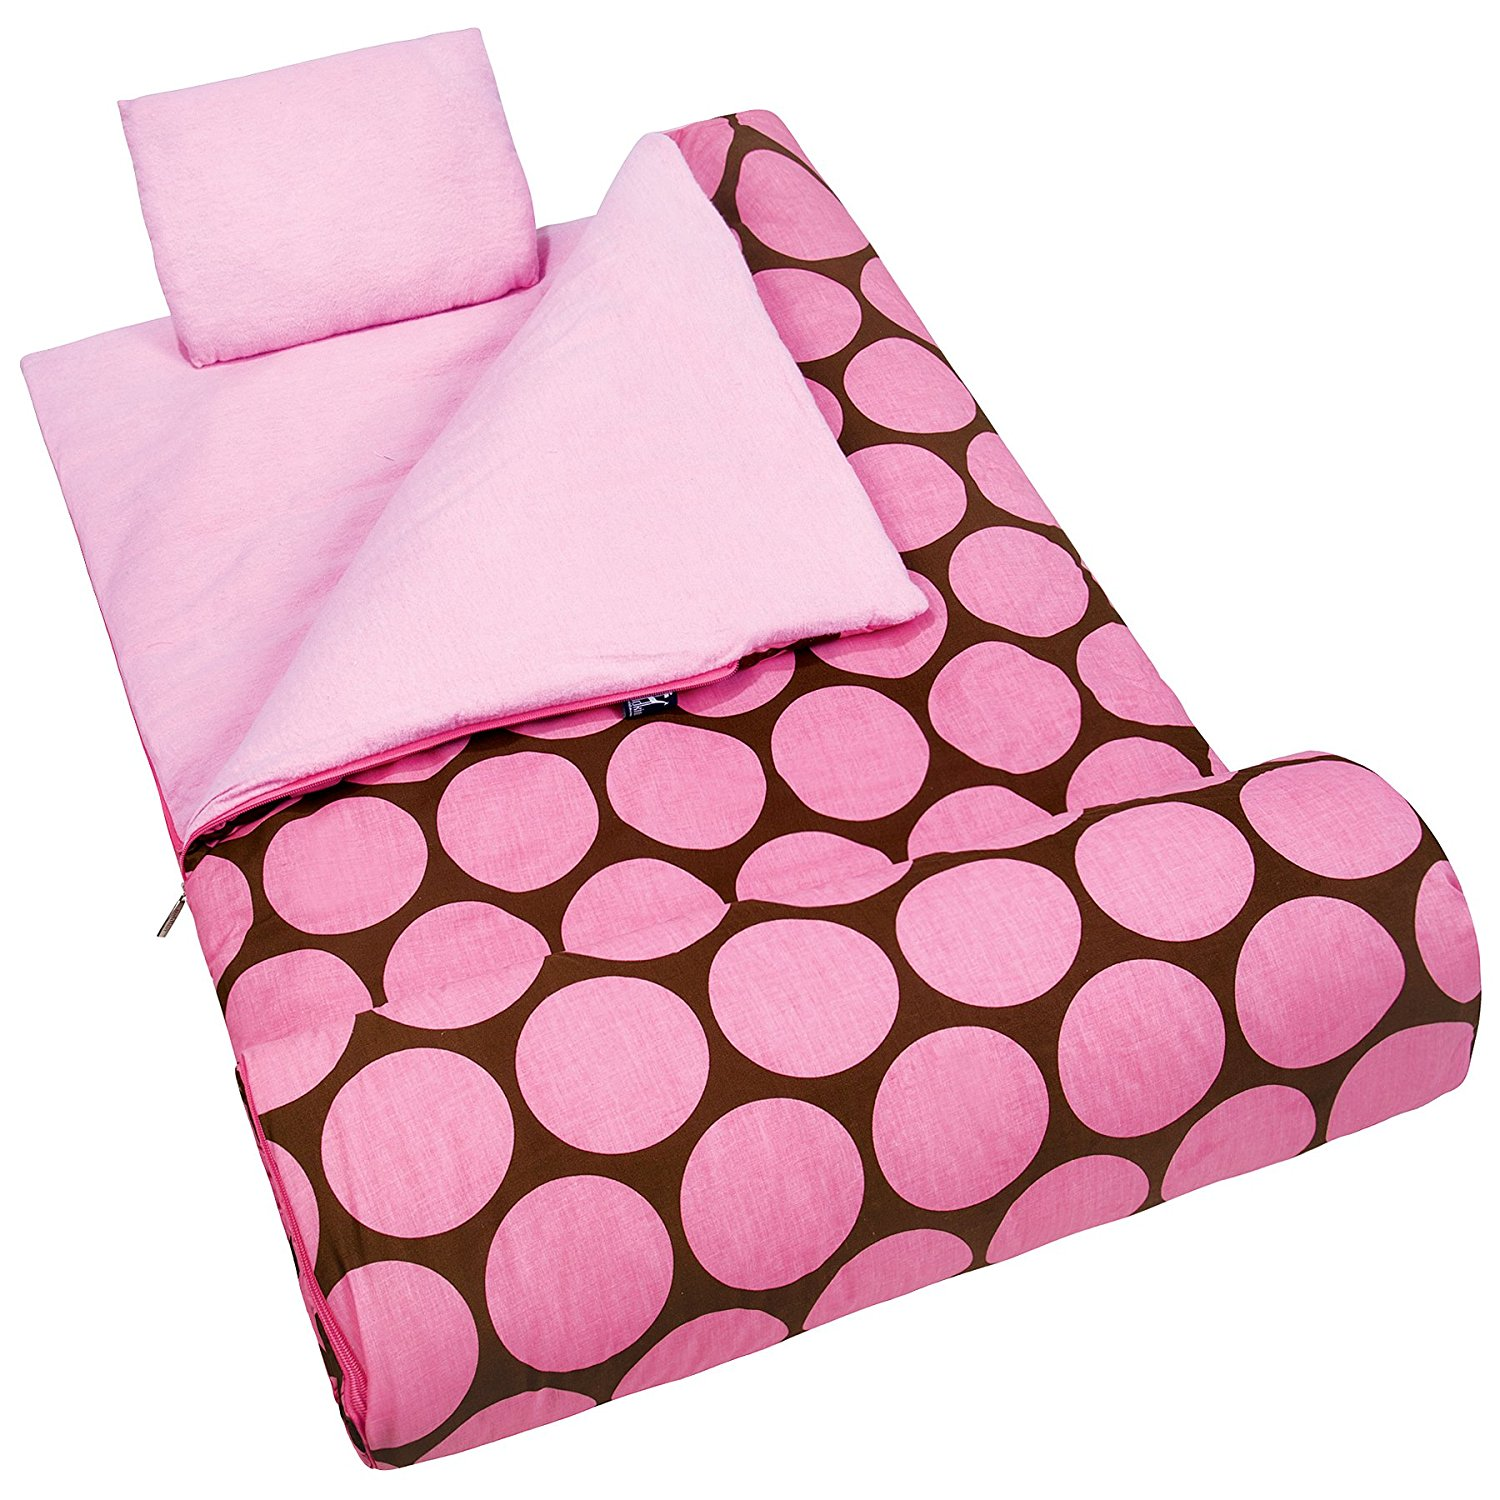 Buy Pink Peace Owls Flannel Sleeping Bag And Pillow For 18 American